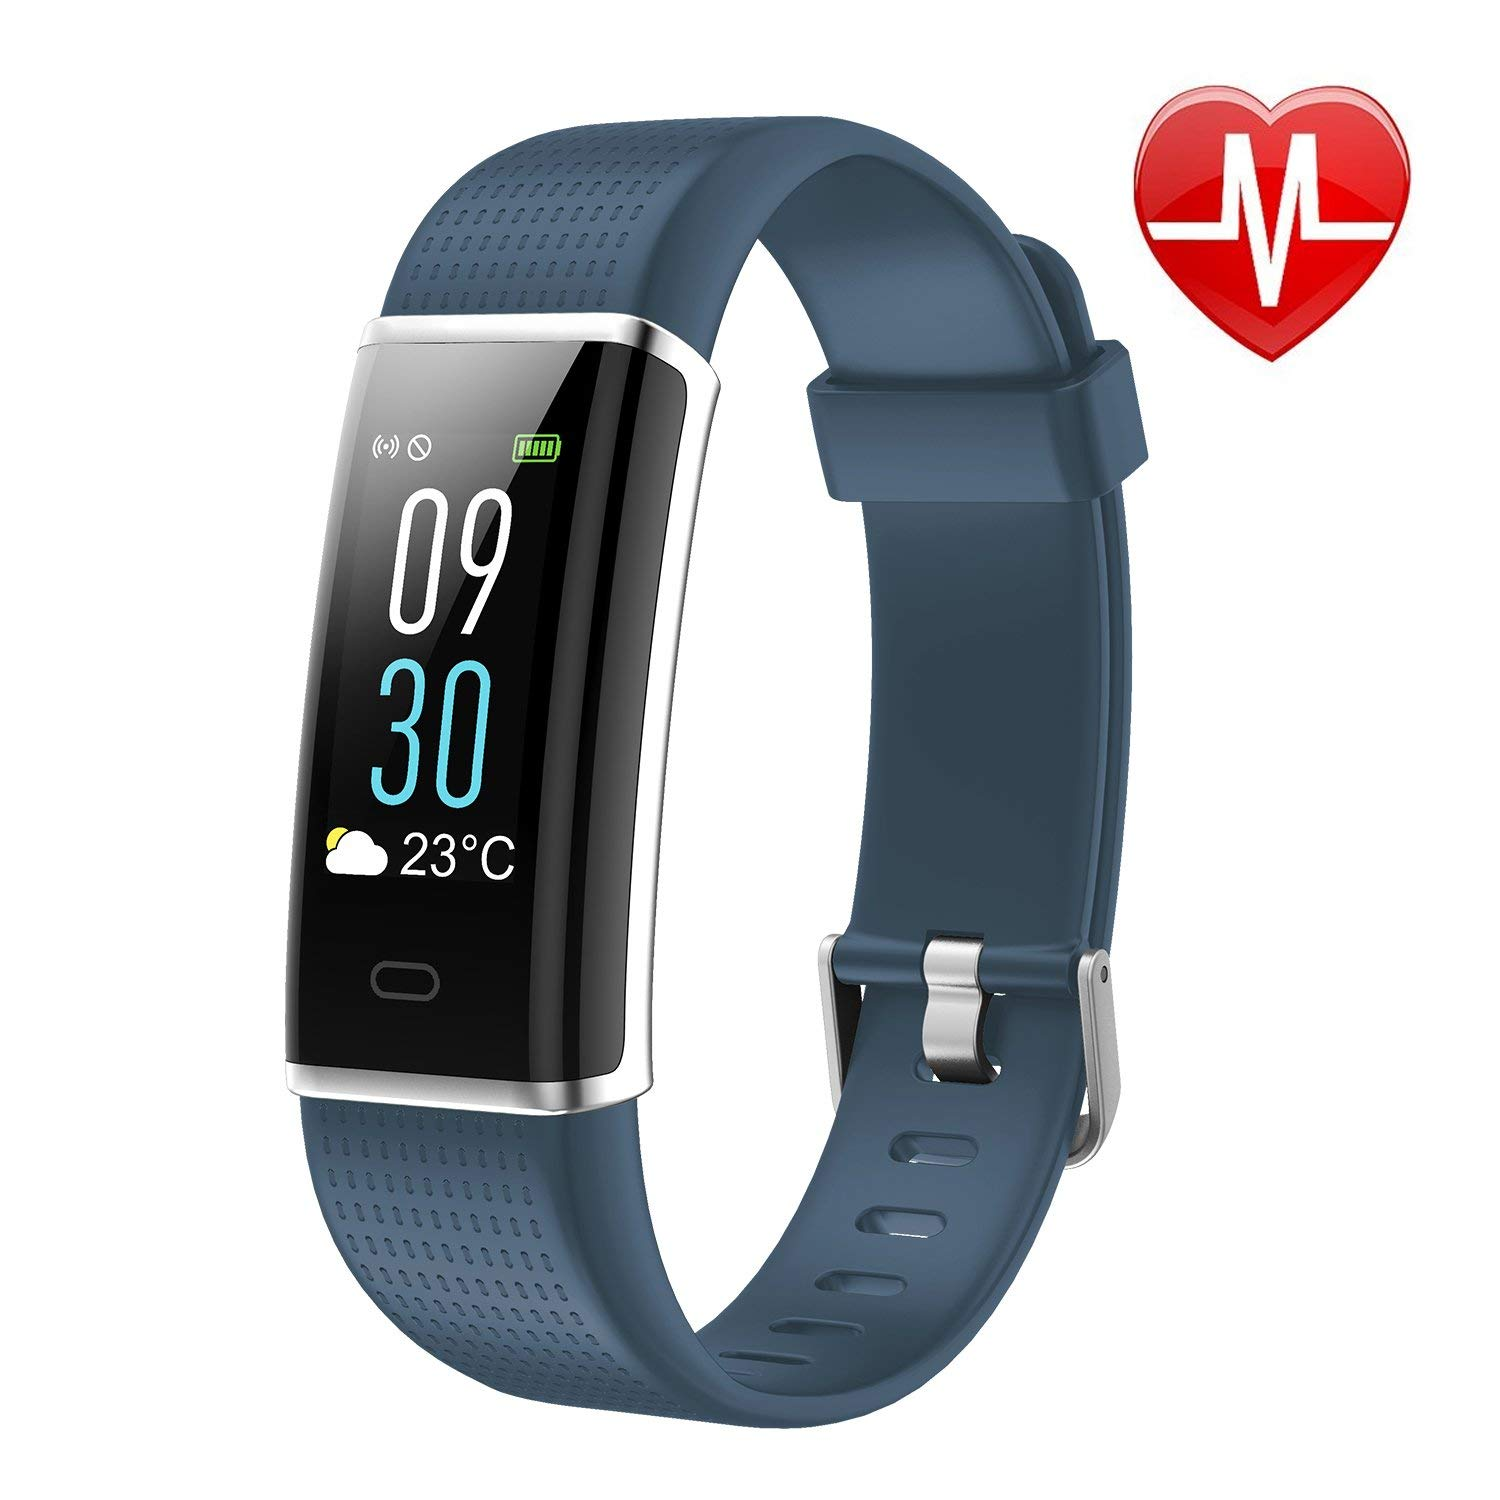 LETSCOM Fitness Tracker Smart Watch